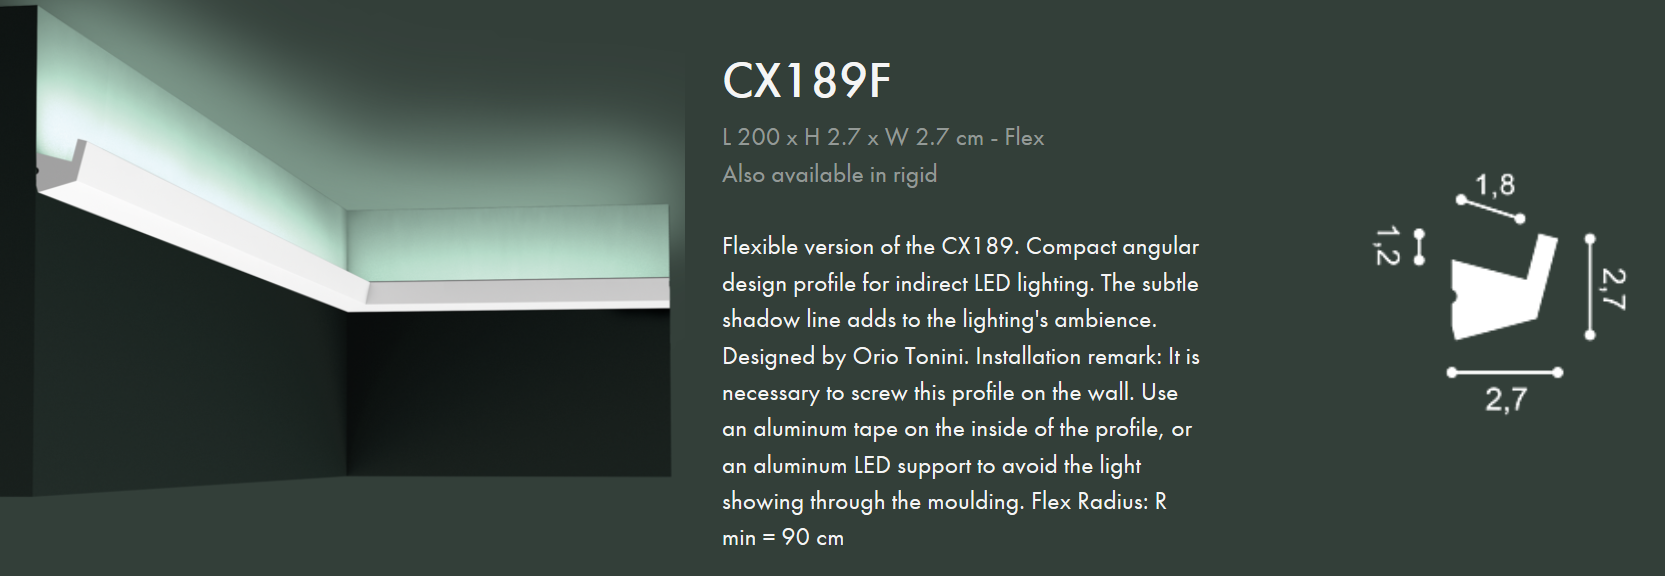 www.archiprofiles.com.au Orac CX189 Flexible